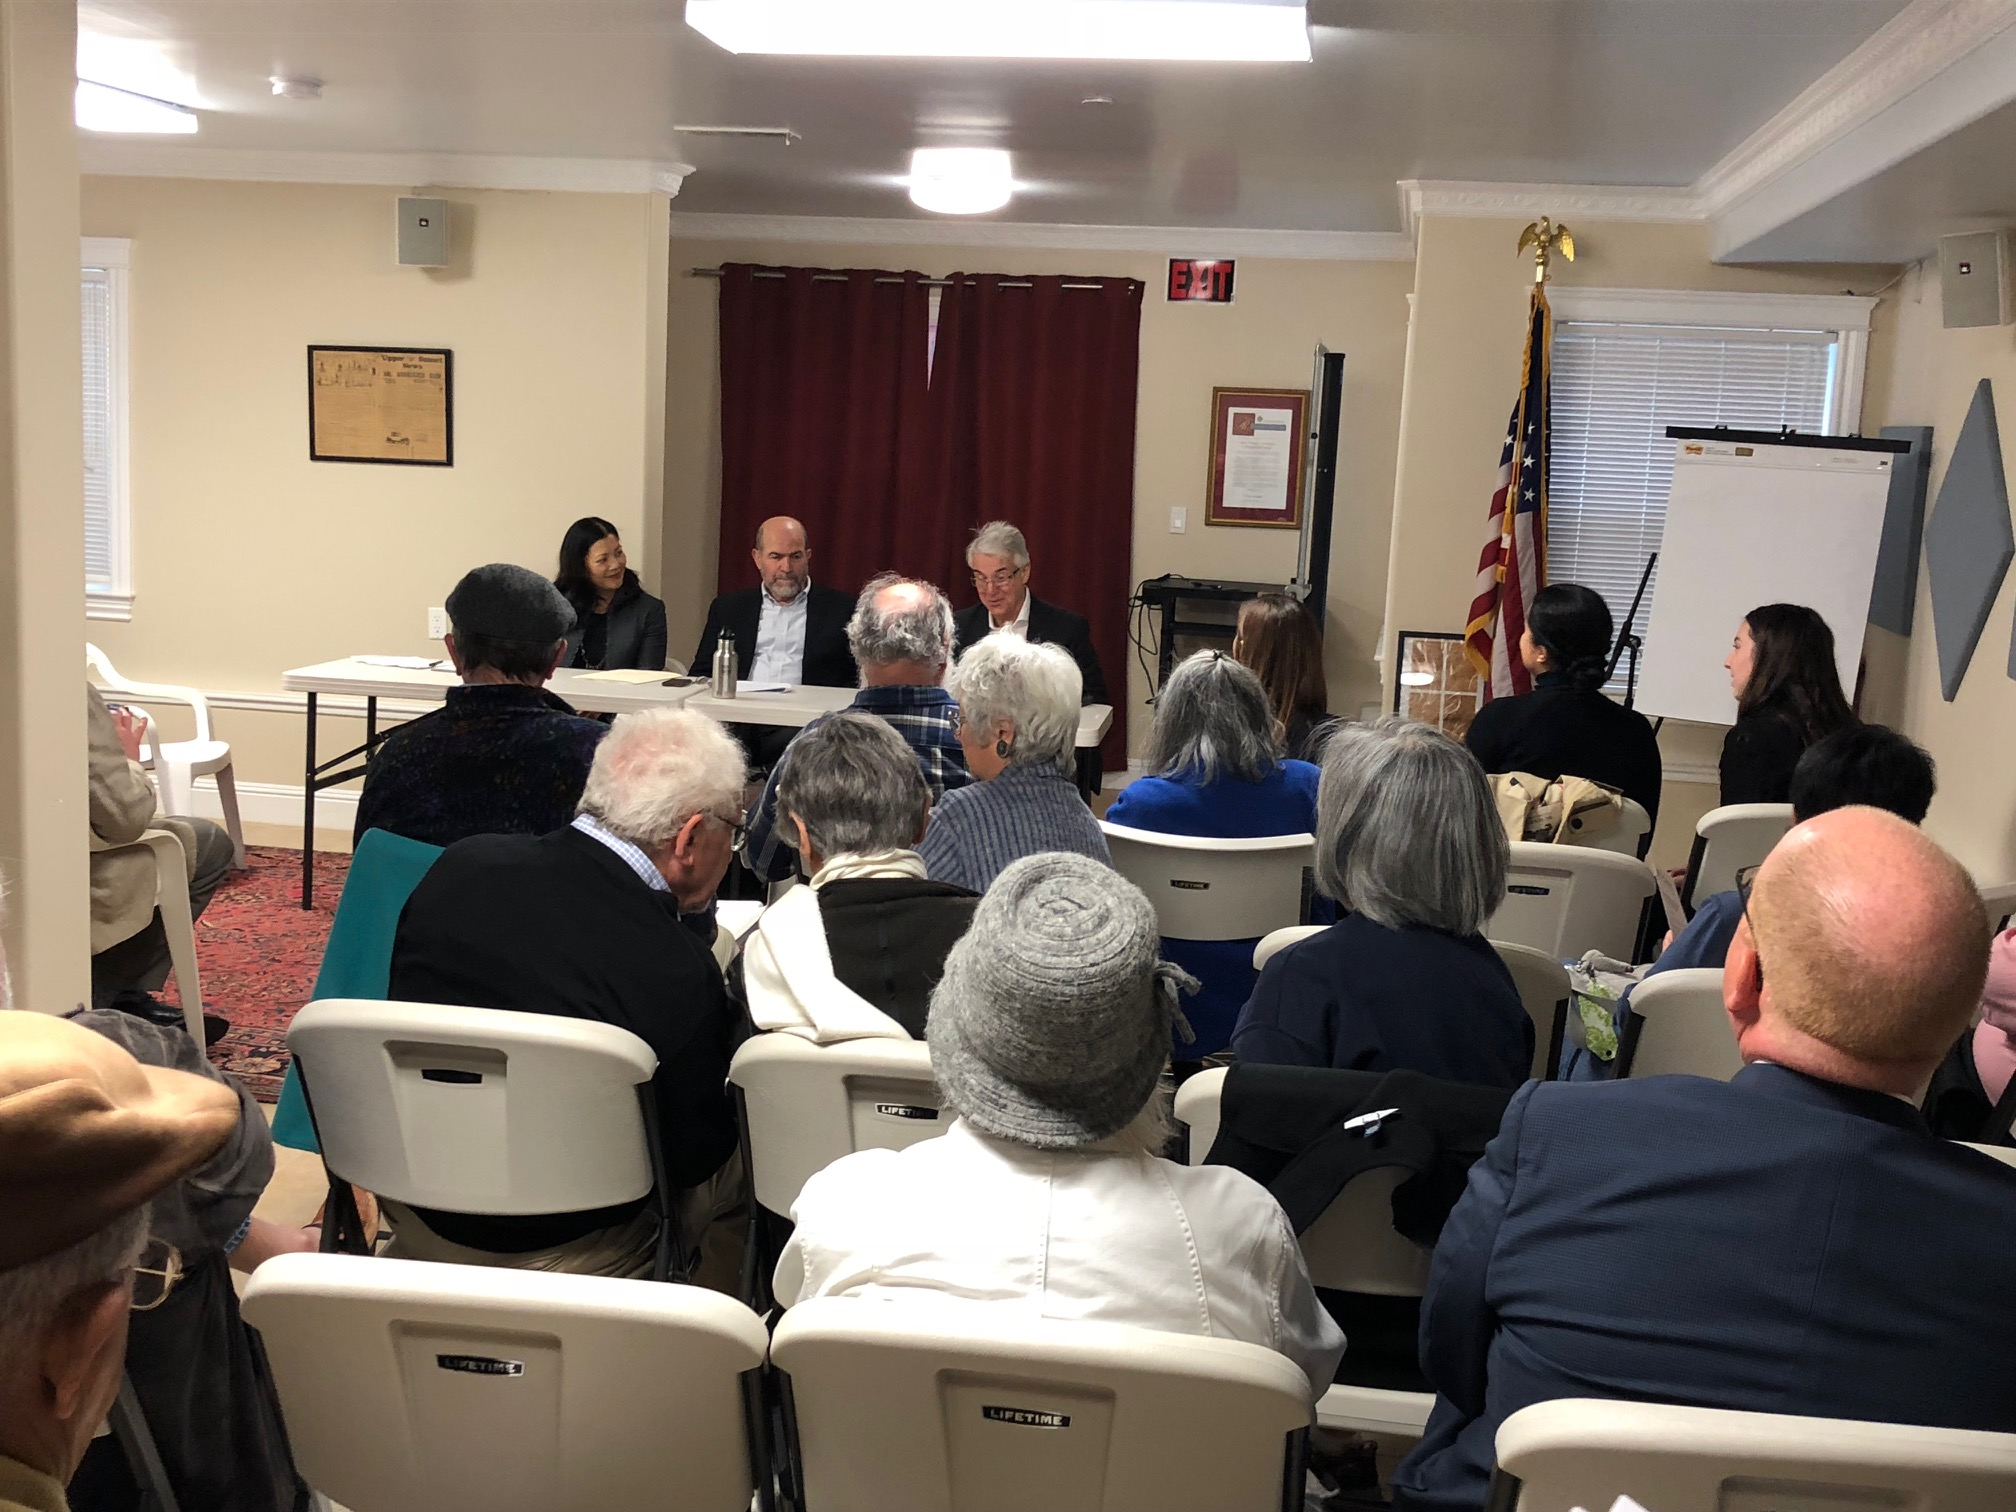 District Attorney George Gascon and Stop Crime SF board member Nancy Tung discuss the impact of Prop 47 and San Francisco's property crime problem before a full house in the SHARP community room.